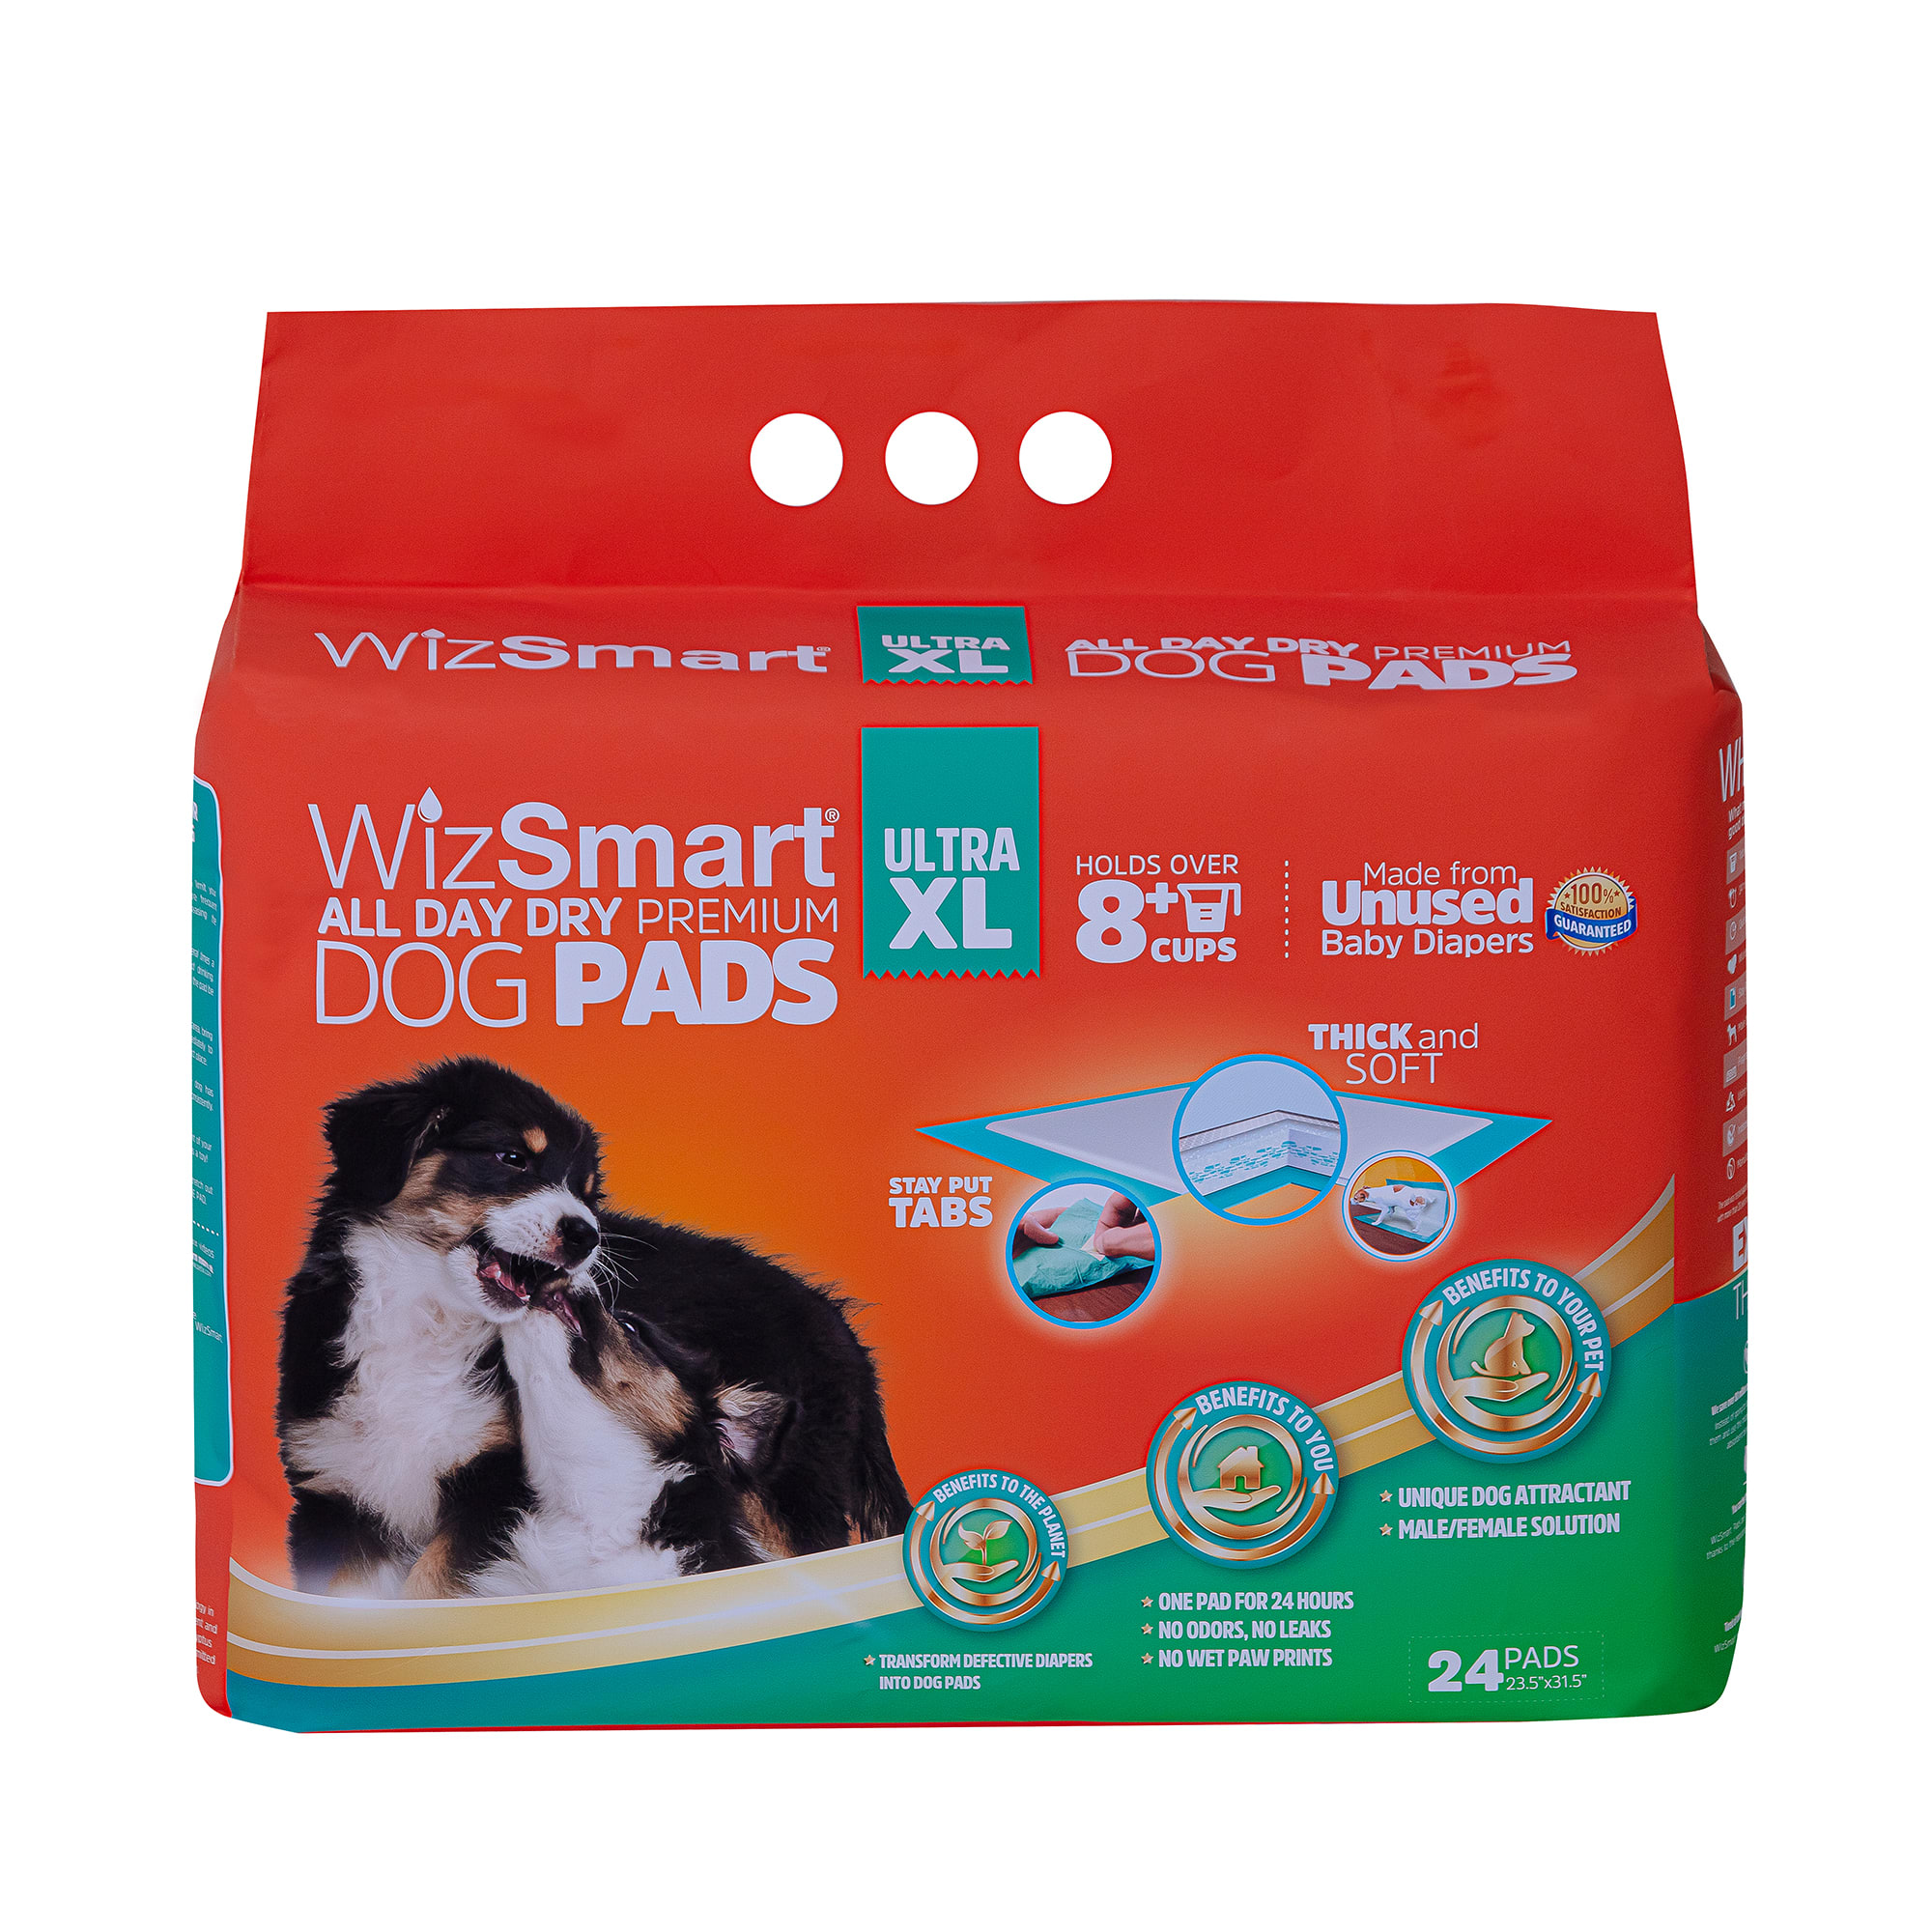 WizSmart All Day Premium X-Large Super Dry Dog Pads, Count of 24, 6.2 LBS